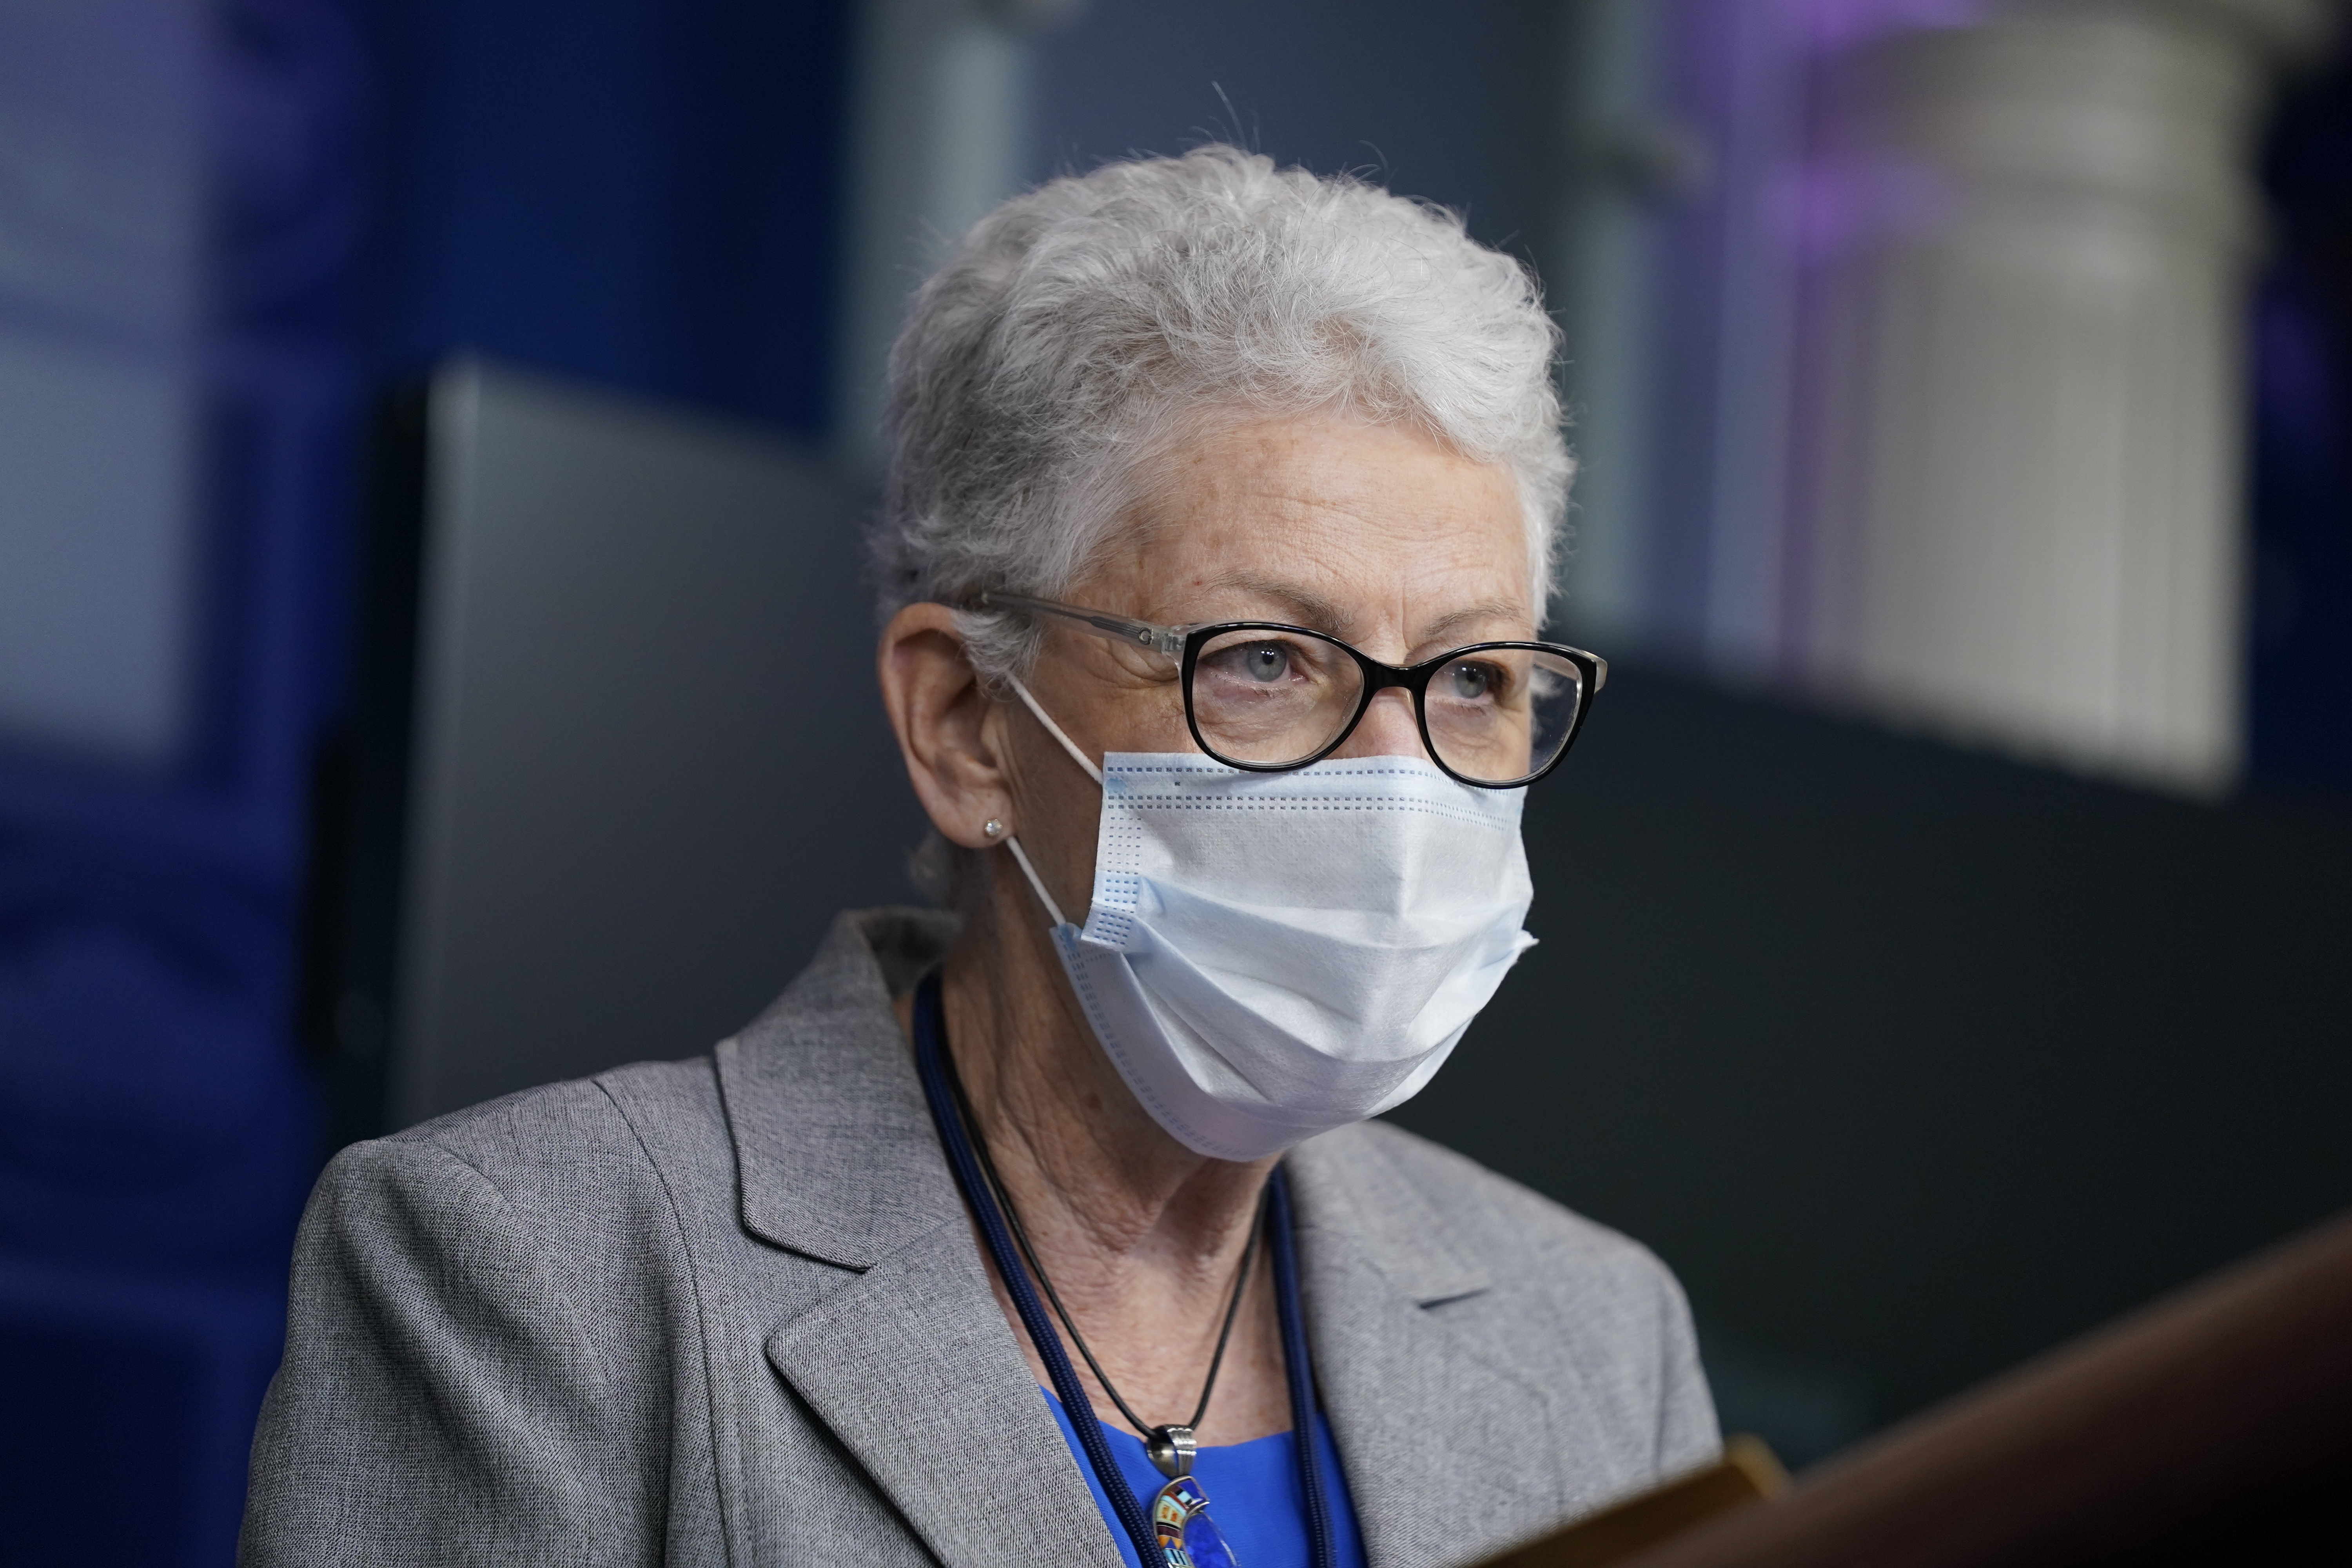 In this Jan. 27, 2021 file photo, National Climate Adviser Gina McCarthy speaks during a press briefing at the White House in Washington.